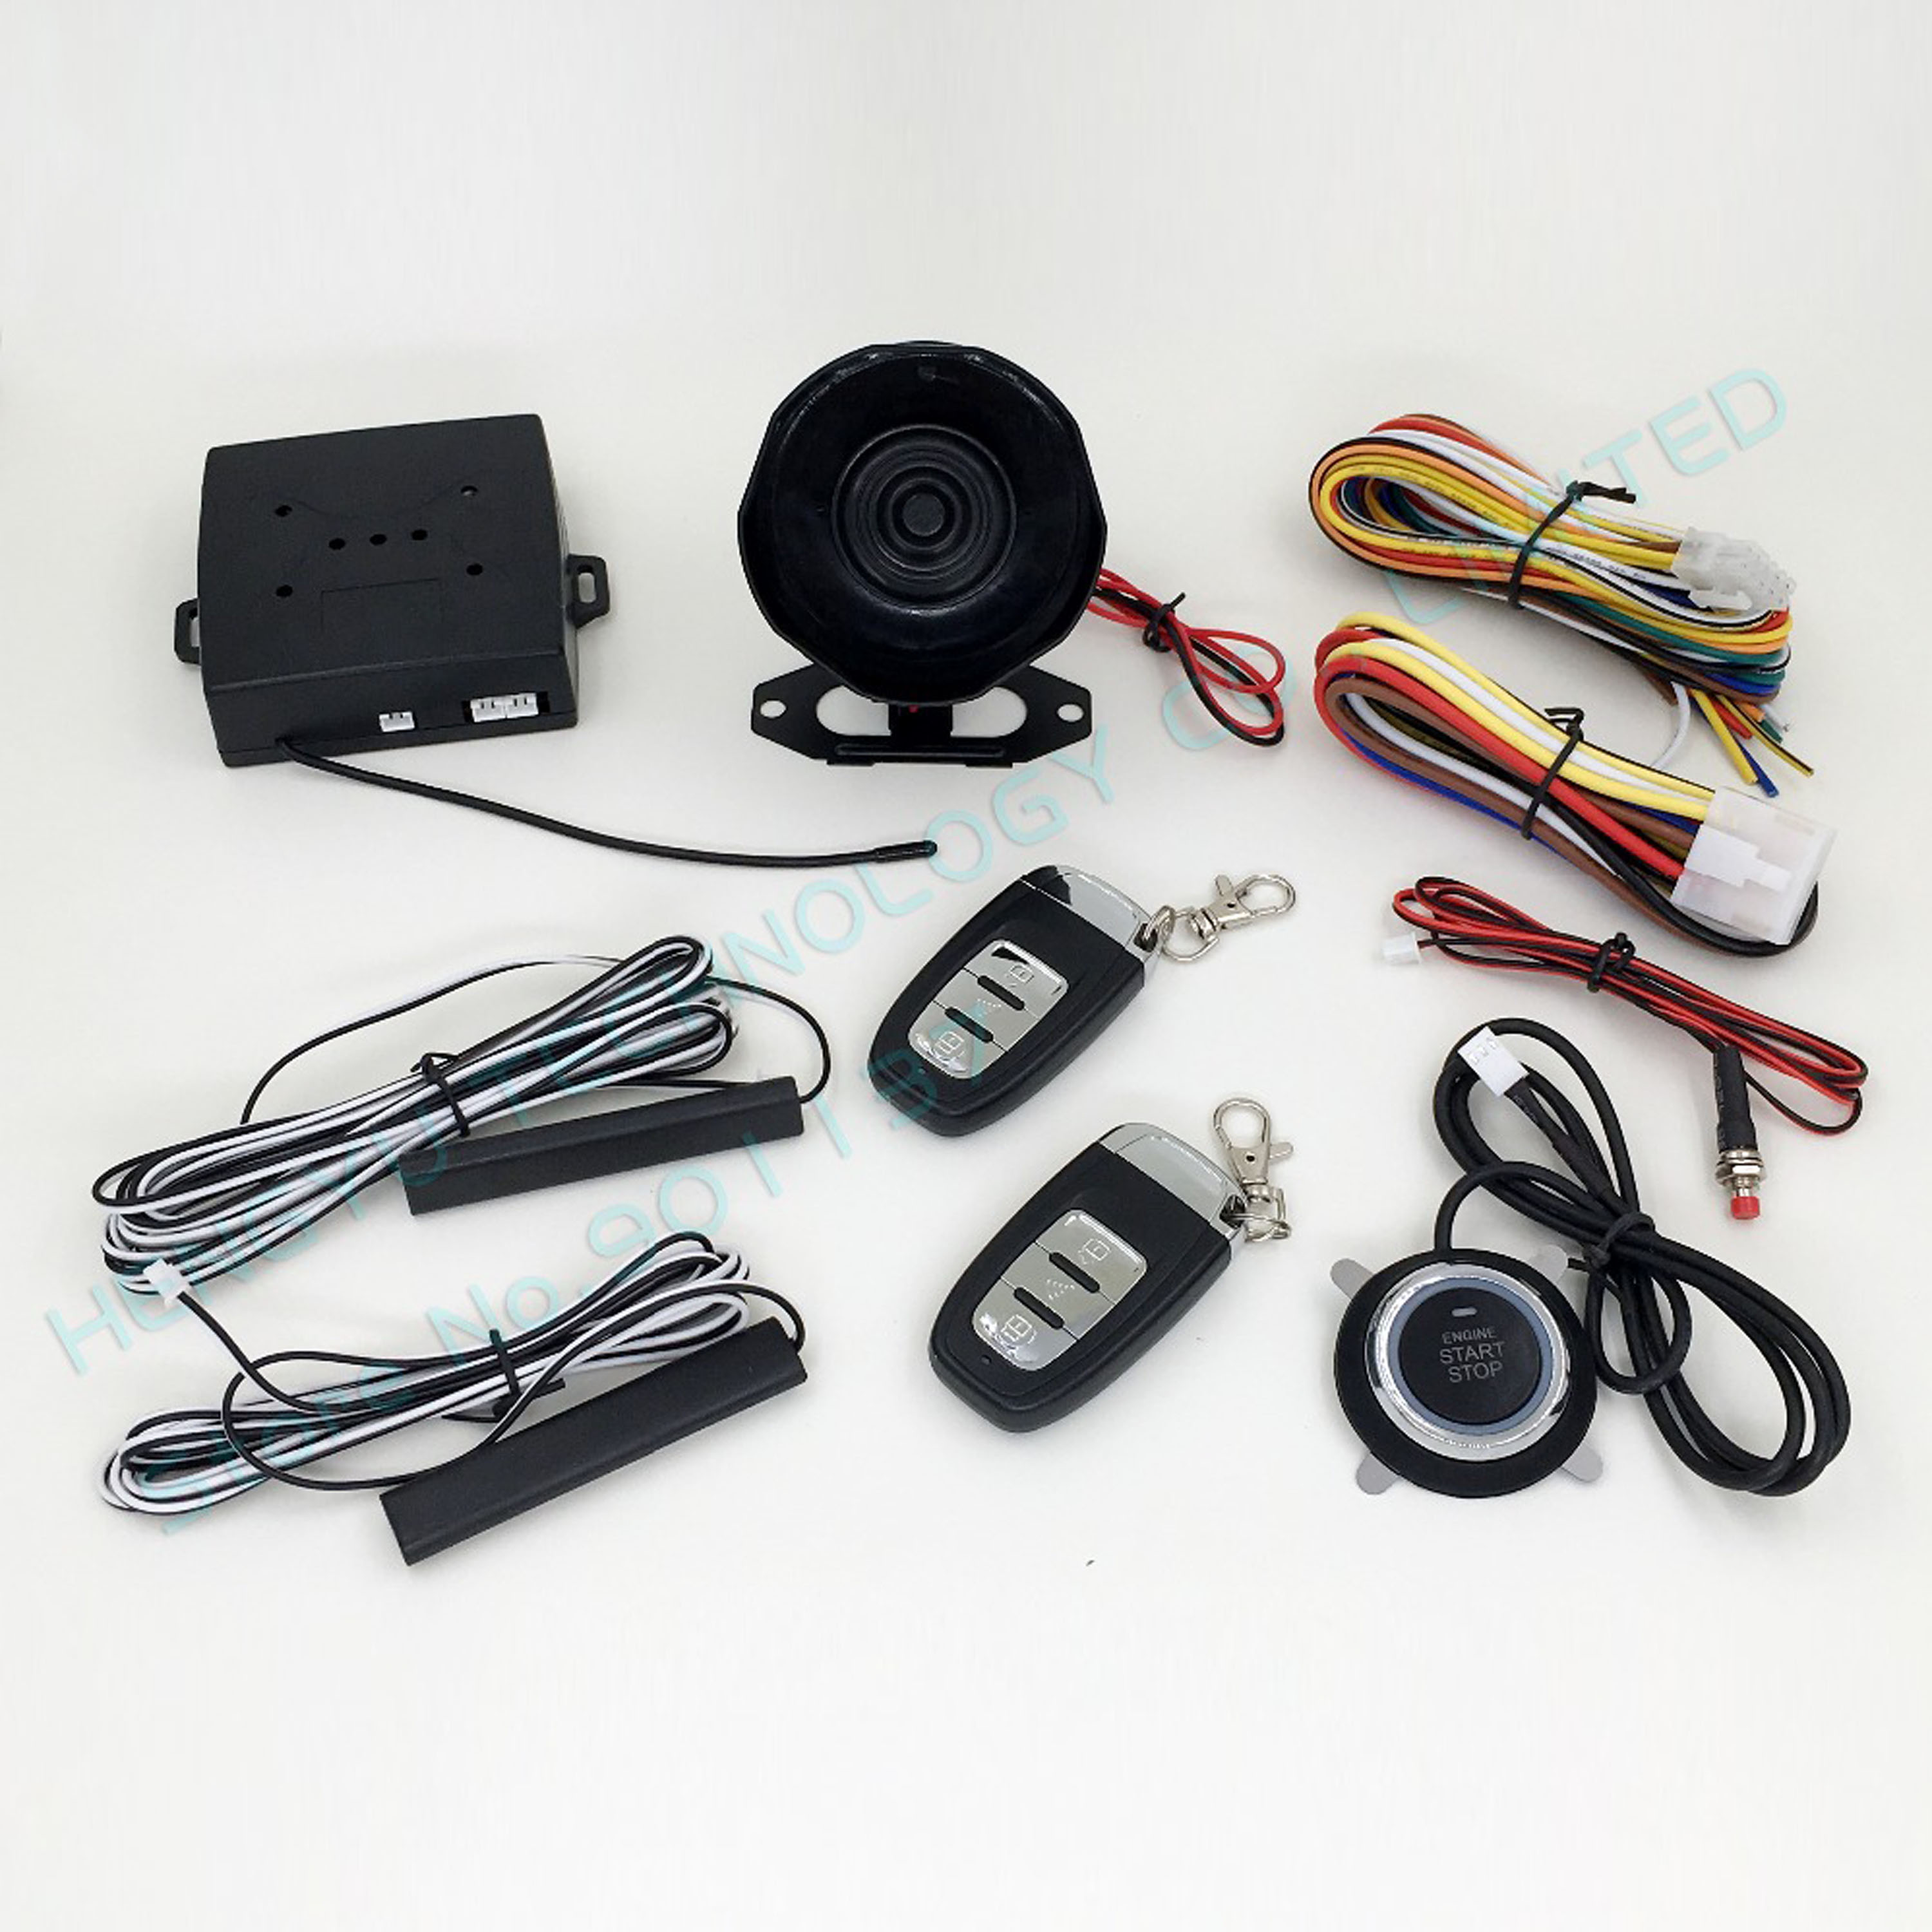 PKE car alarm push button start stop button passive keyless entry remote engine start auto lock